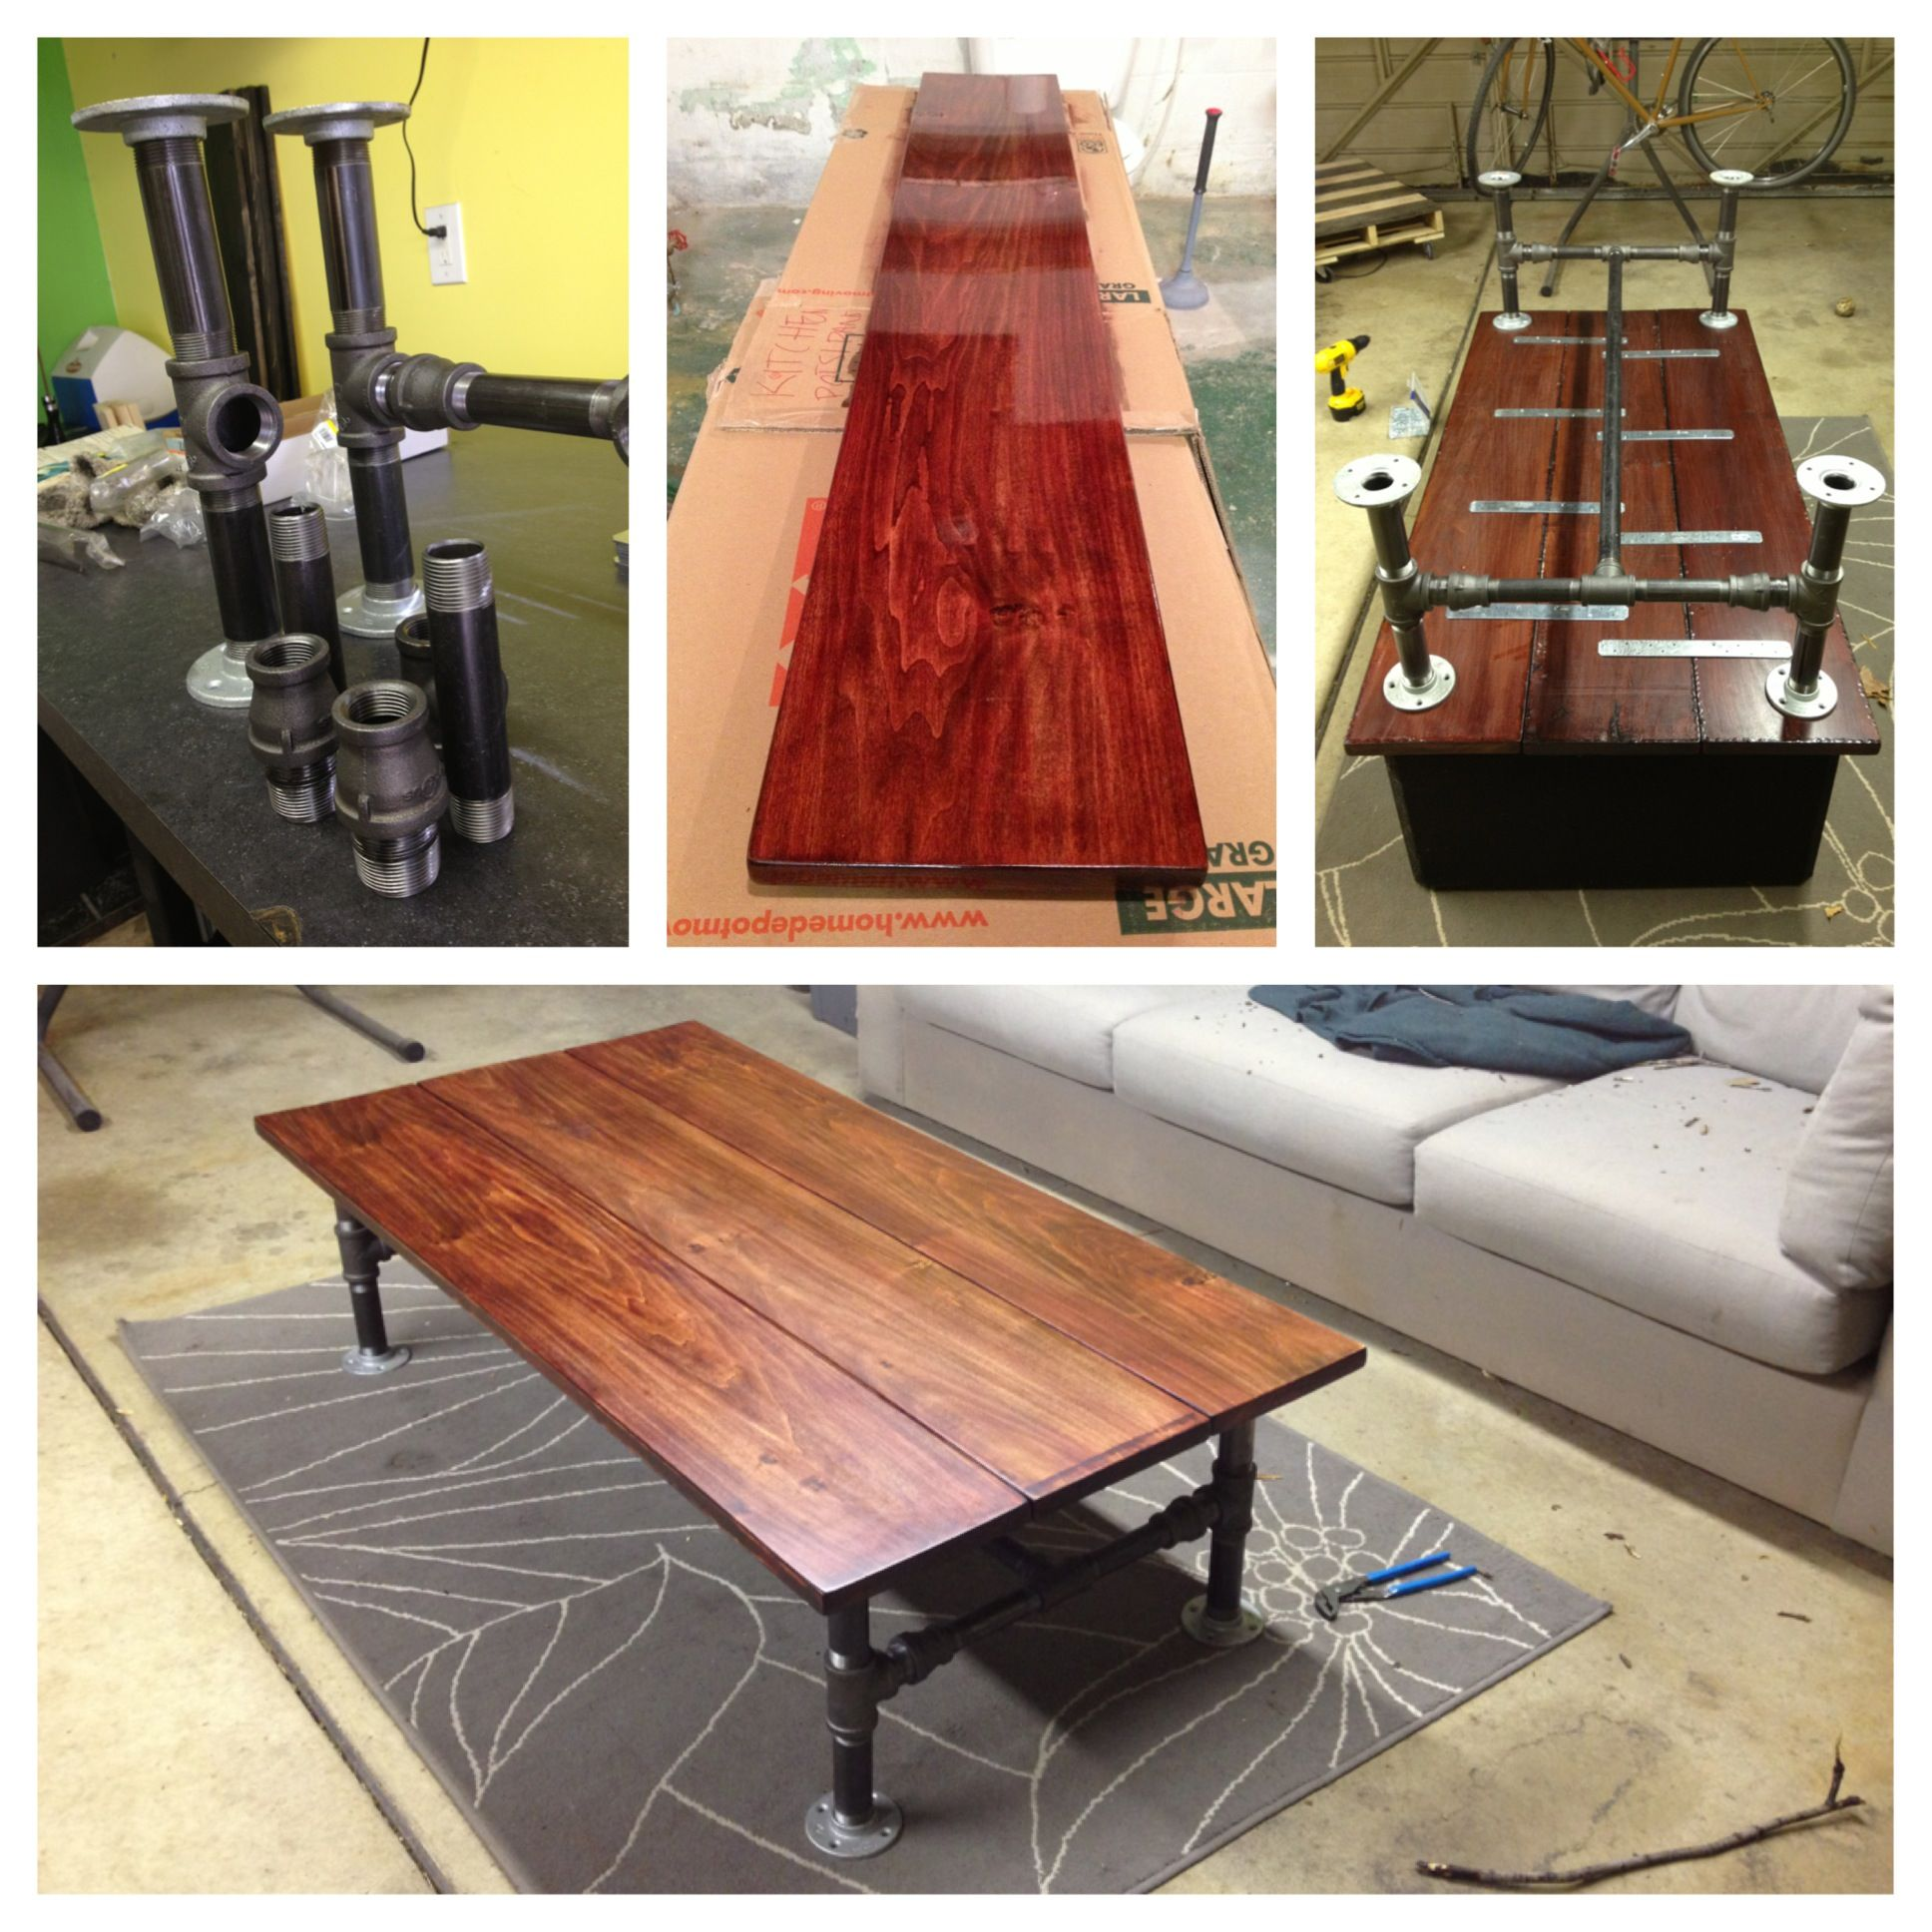 Black Pipe Coffee Table Diy: DIY Coffee Table Made Out Of Poplar Wood And Black Pipe